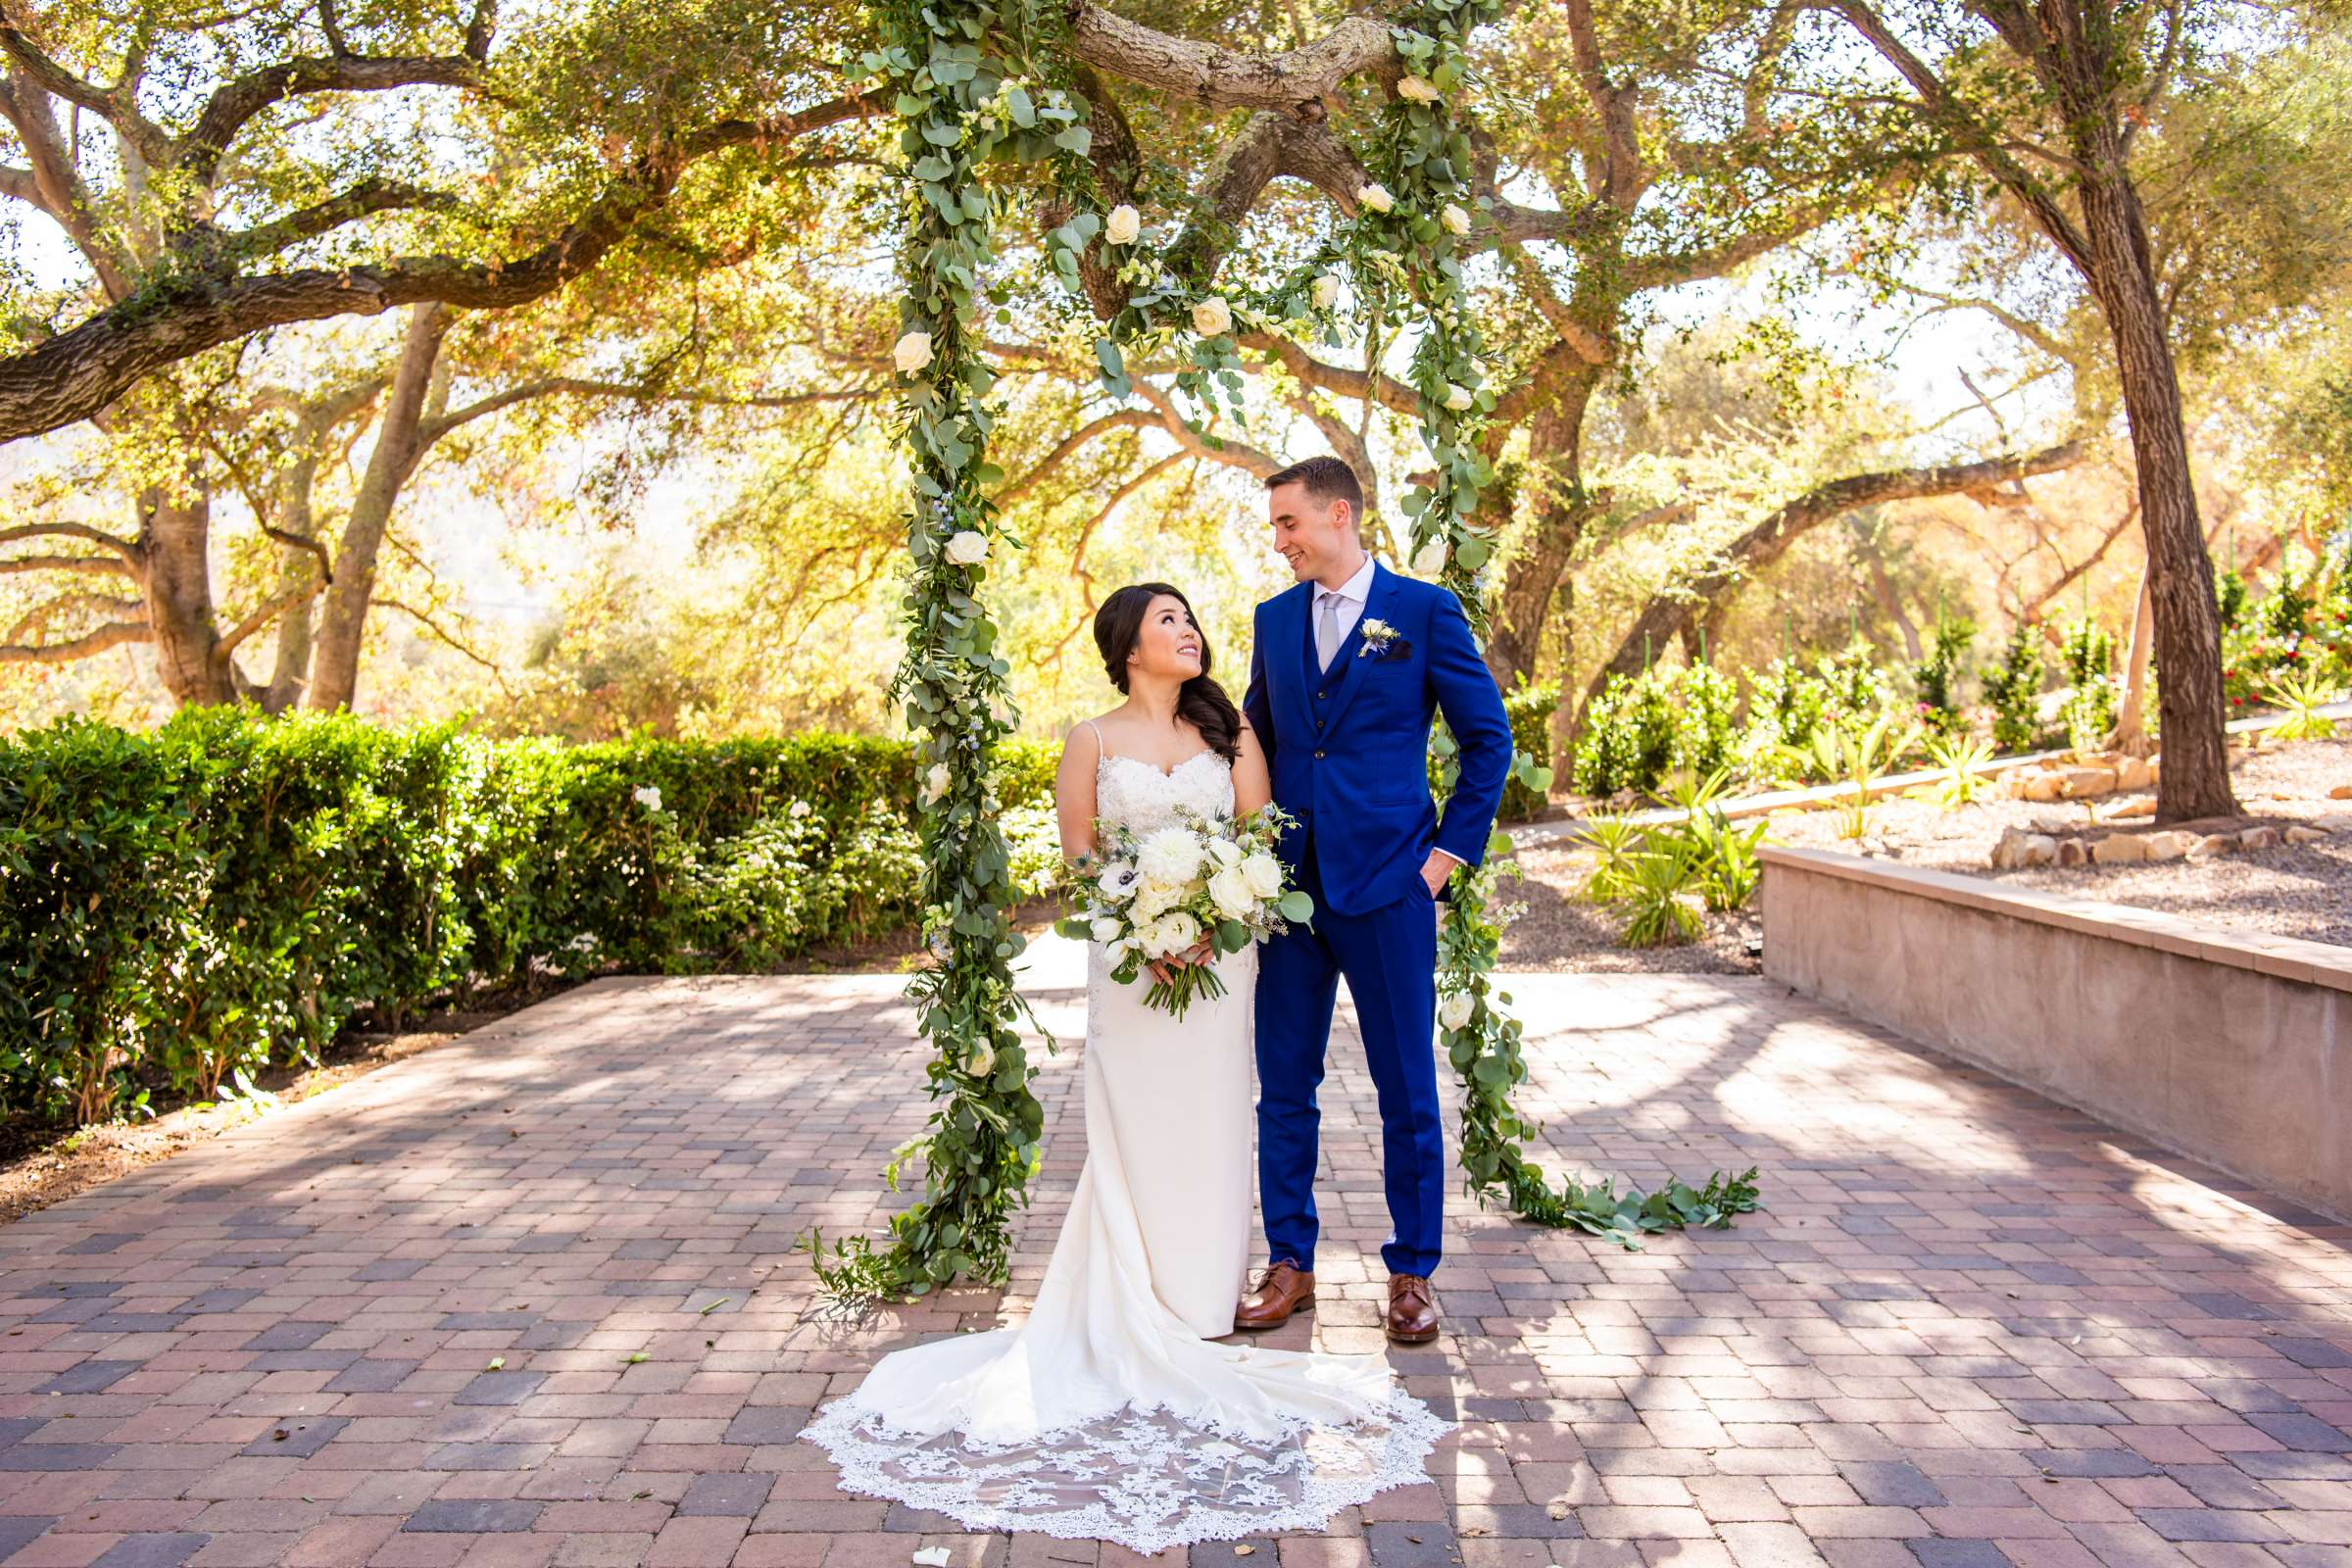 Mt Woodson Castle Wedding coordinated by I Do Weddings, Aya and Jared Wedding Photo #486951 by True Photography